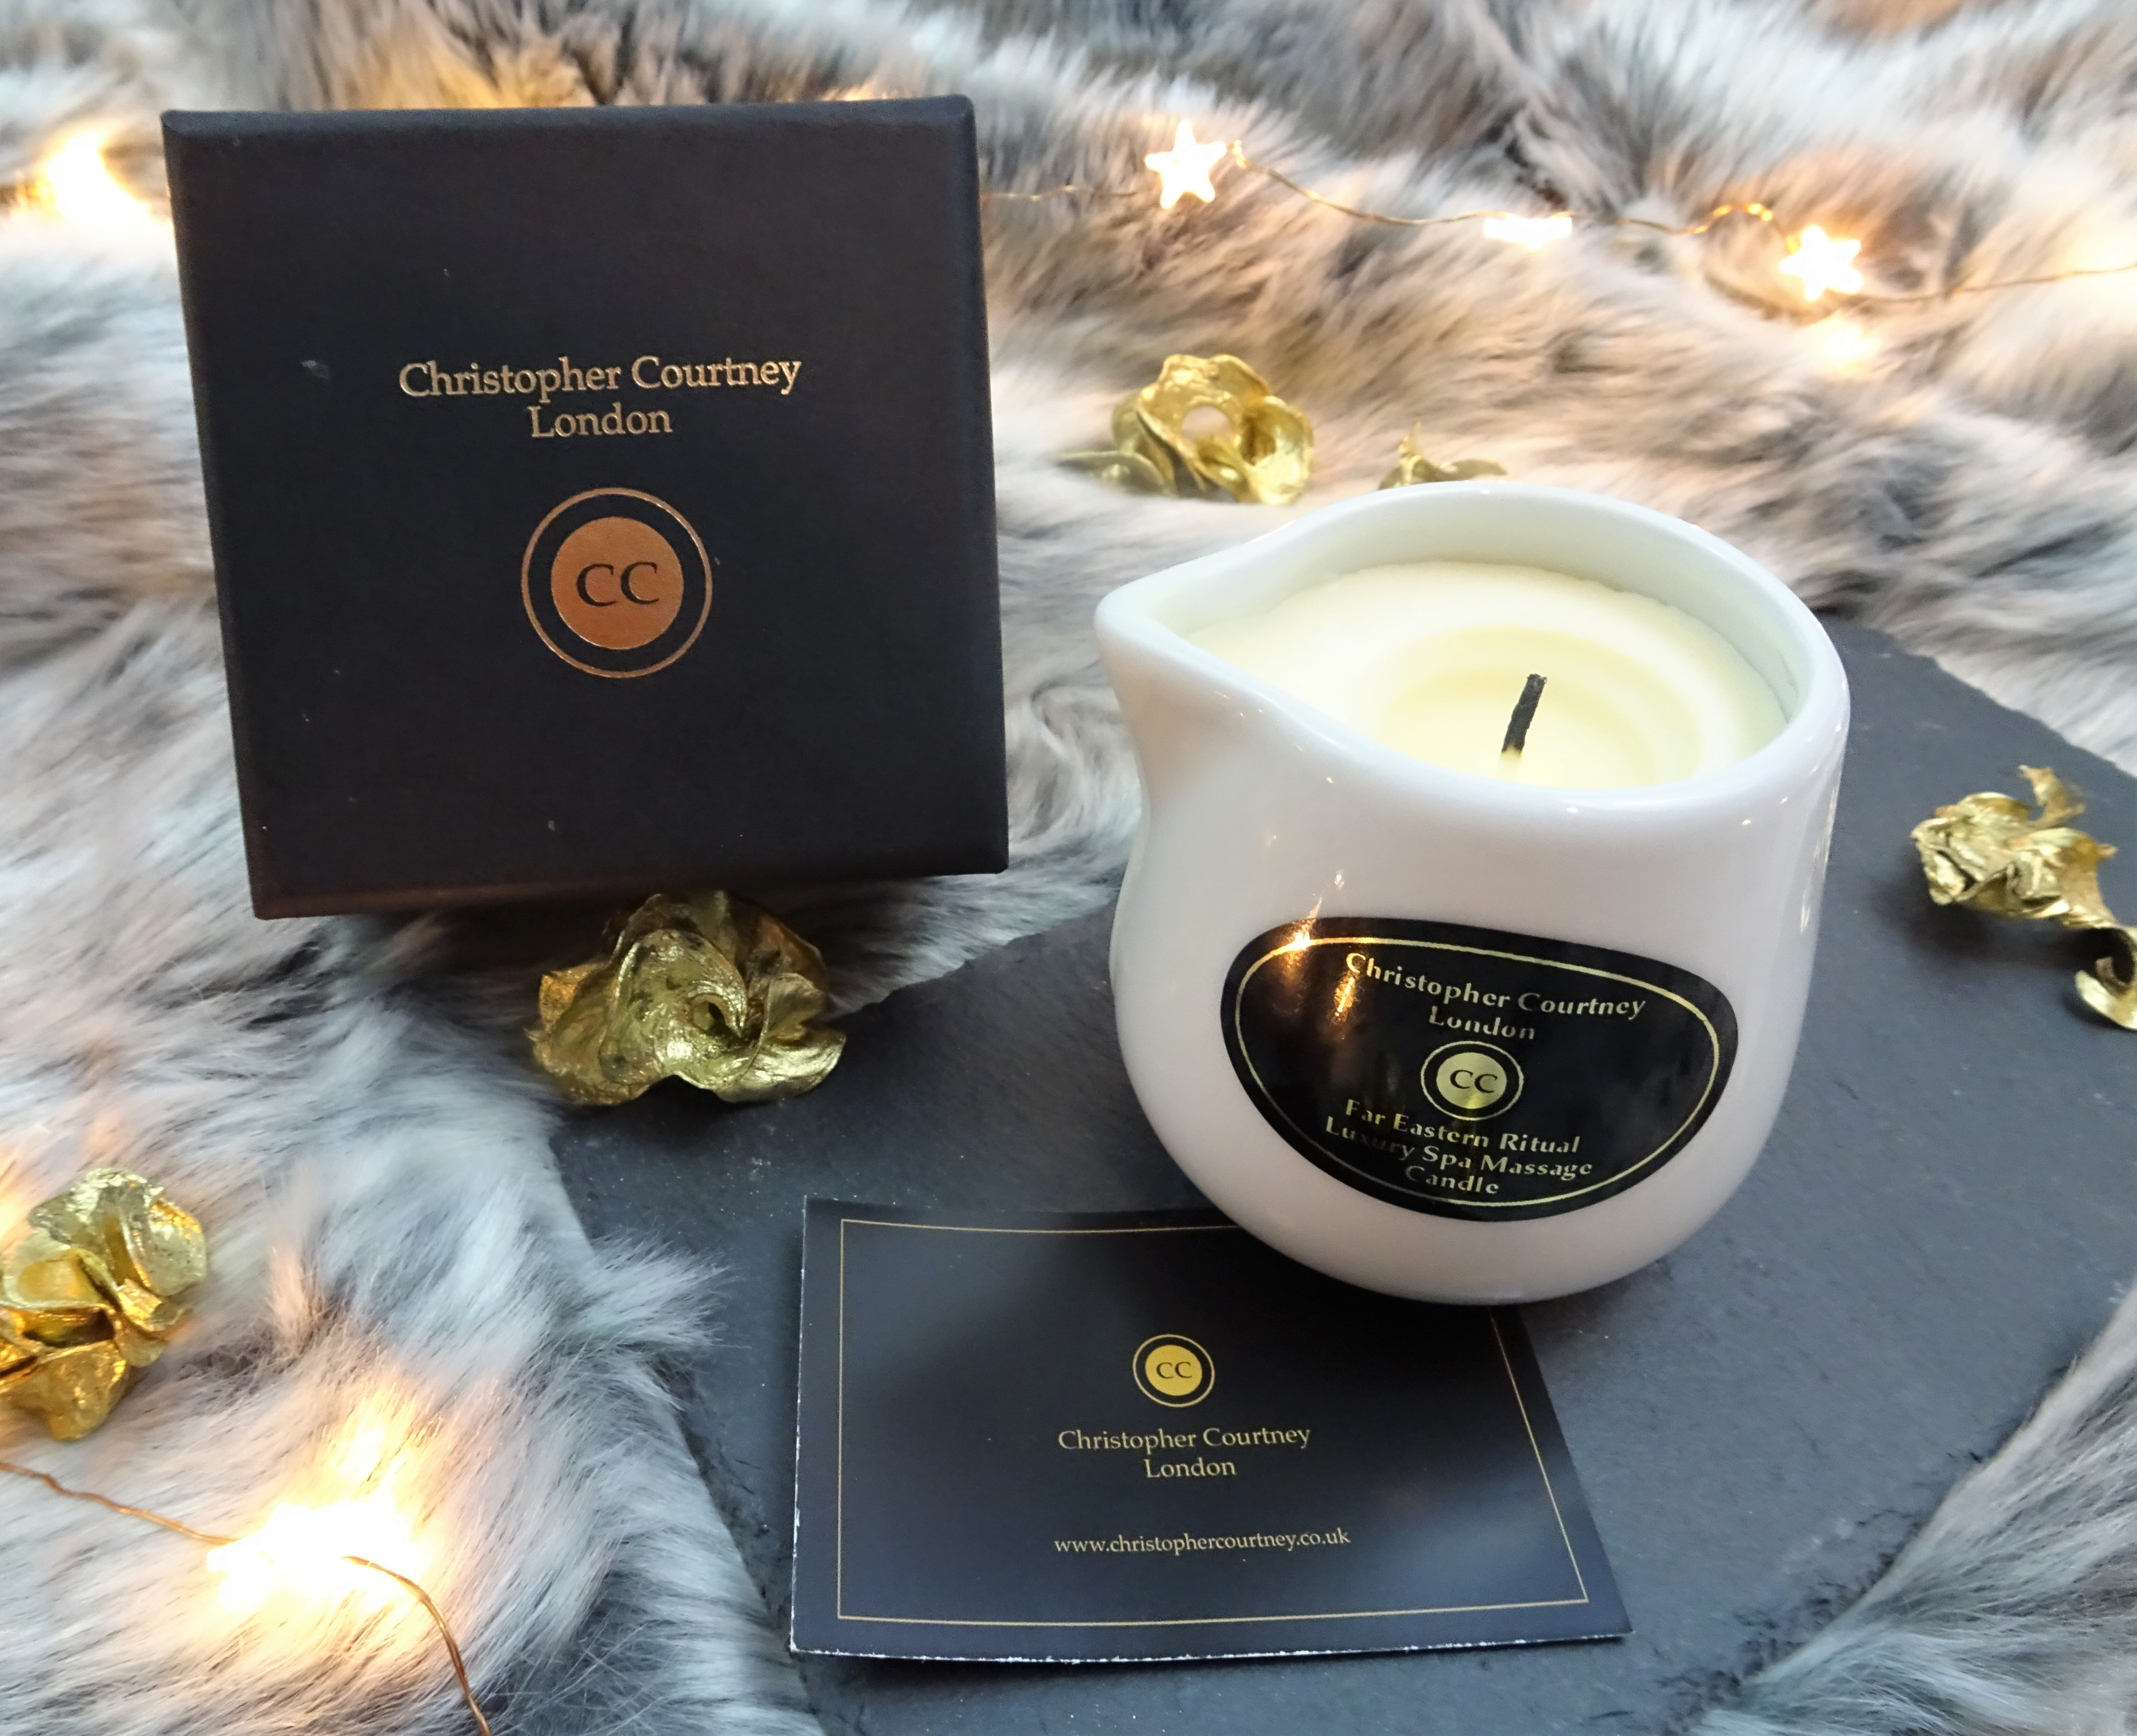 Christopher Courtney candle